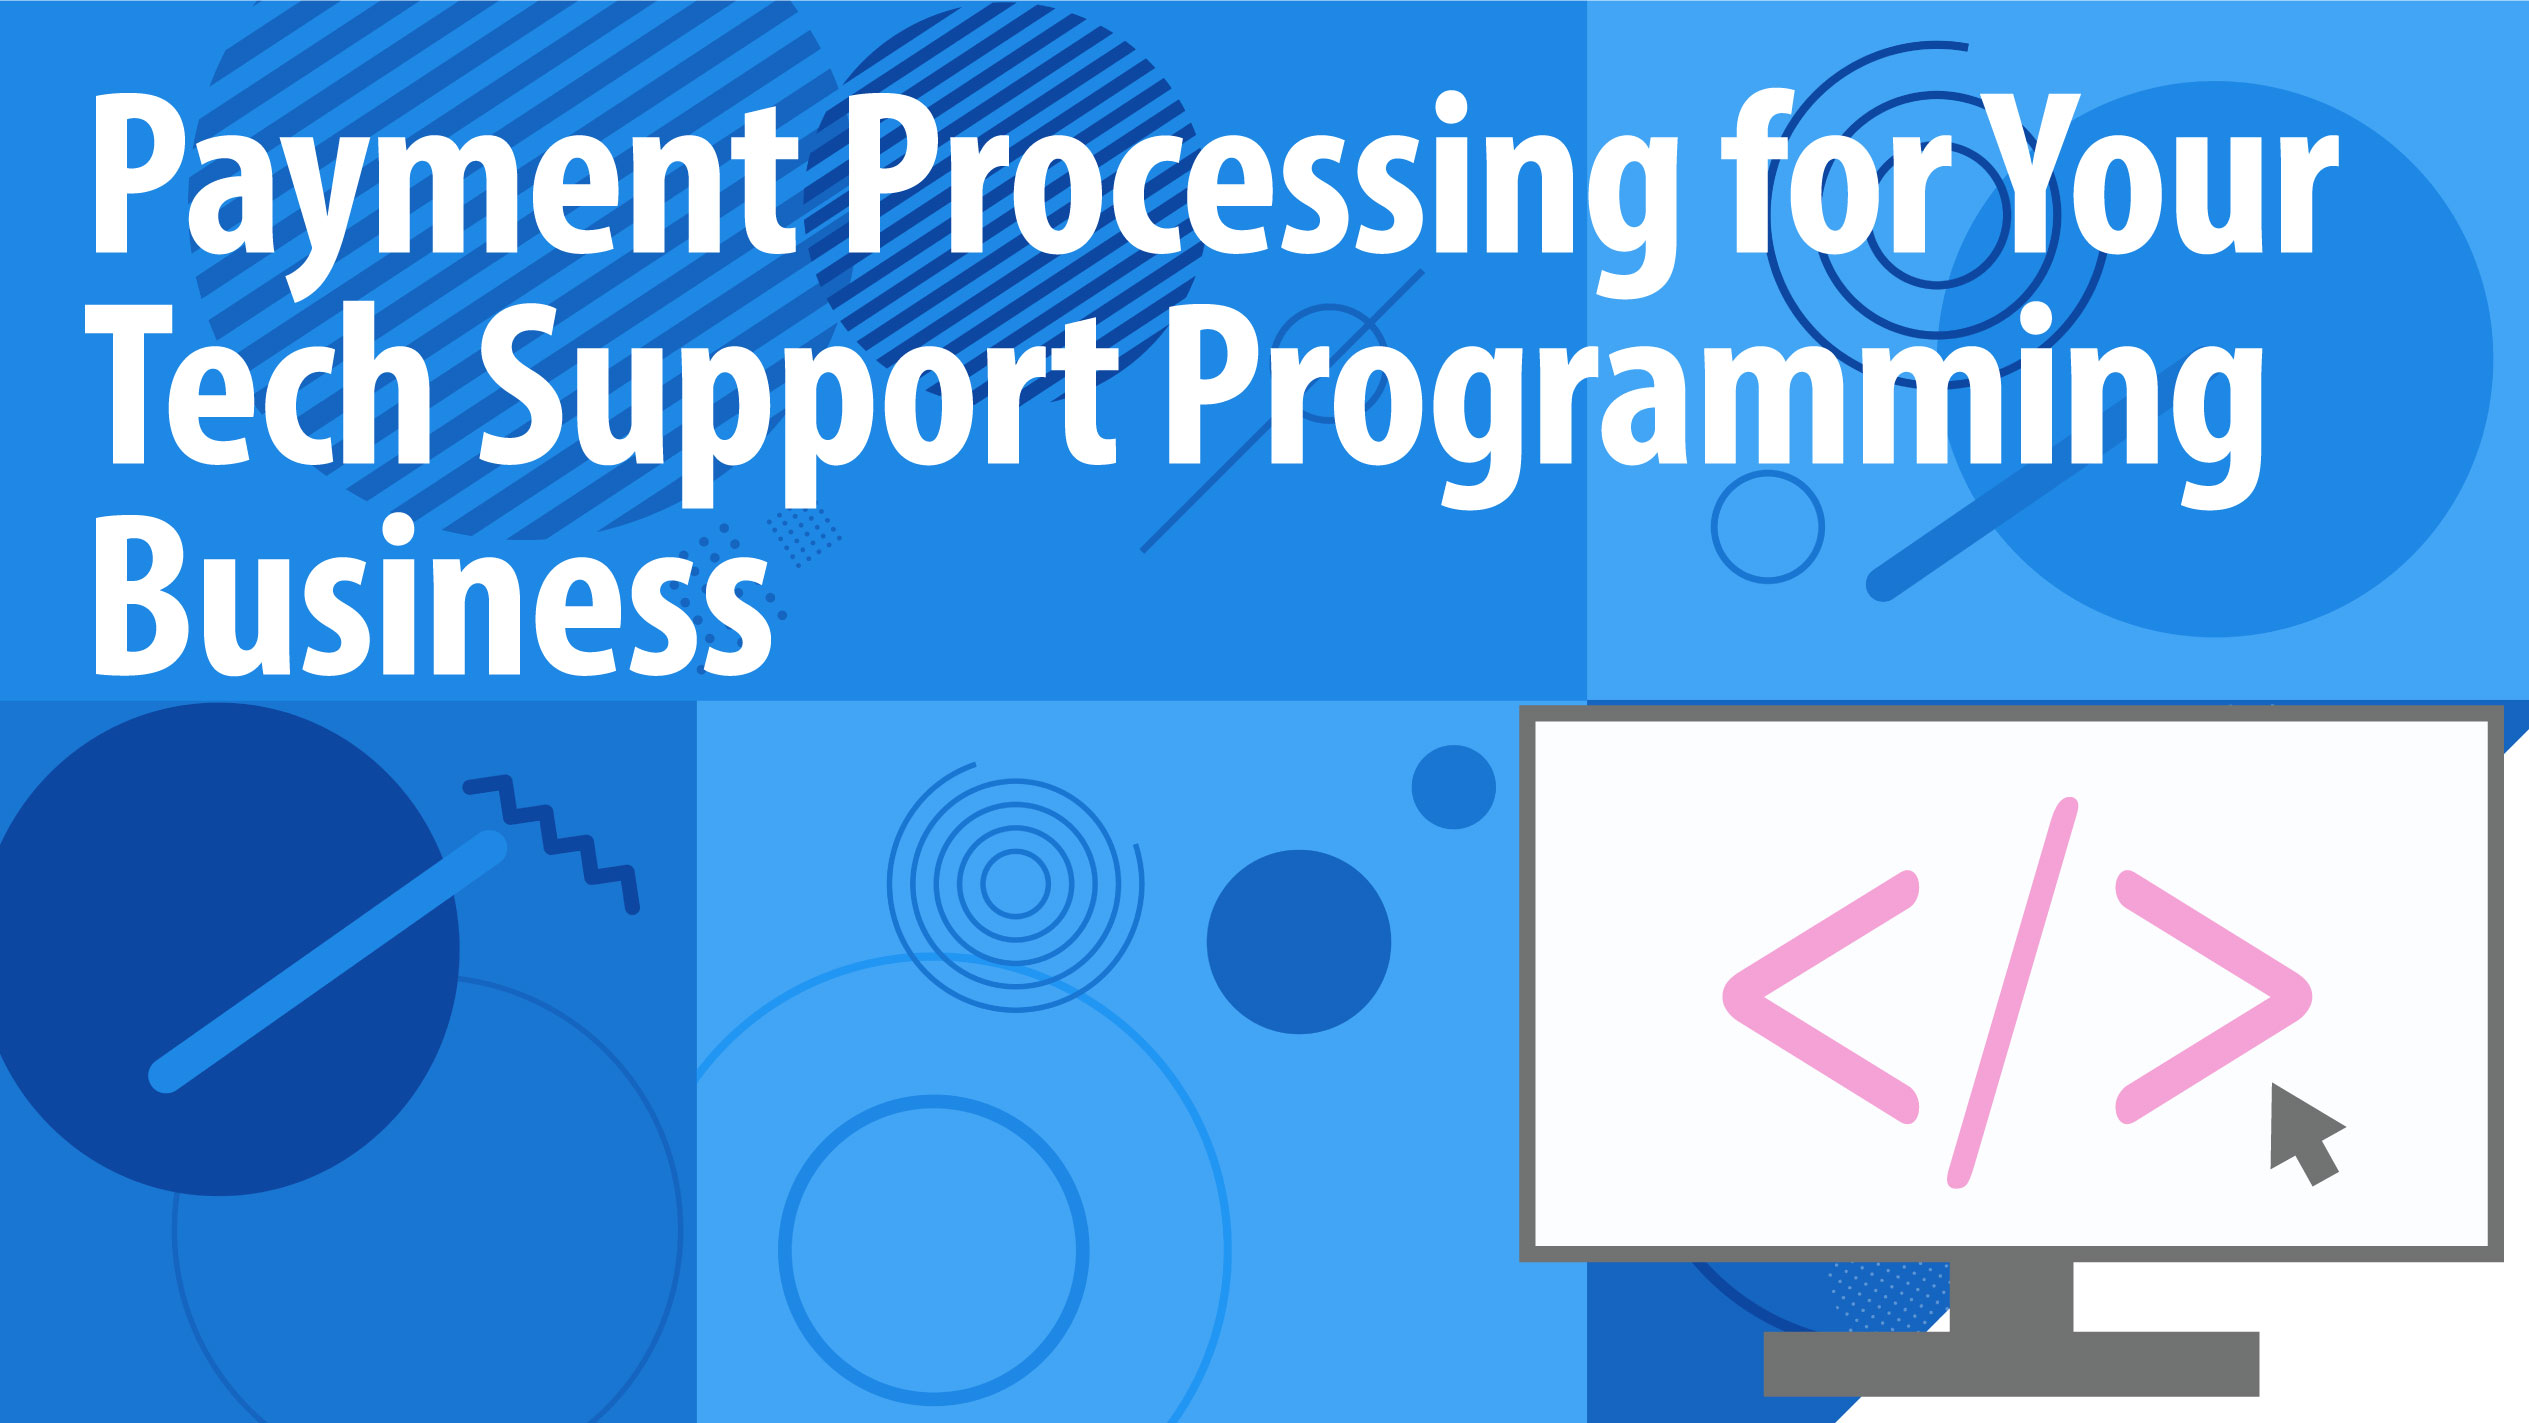 Payment Processing for Your Tech Support Programming Business